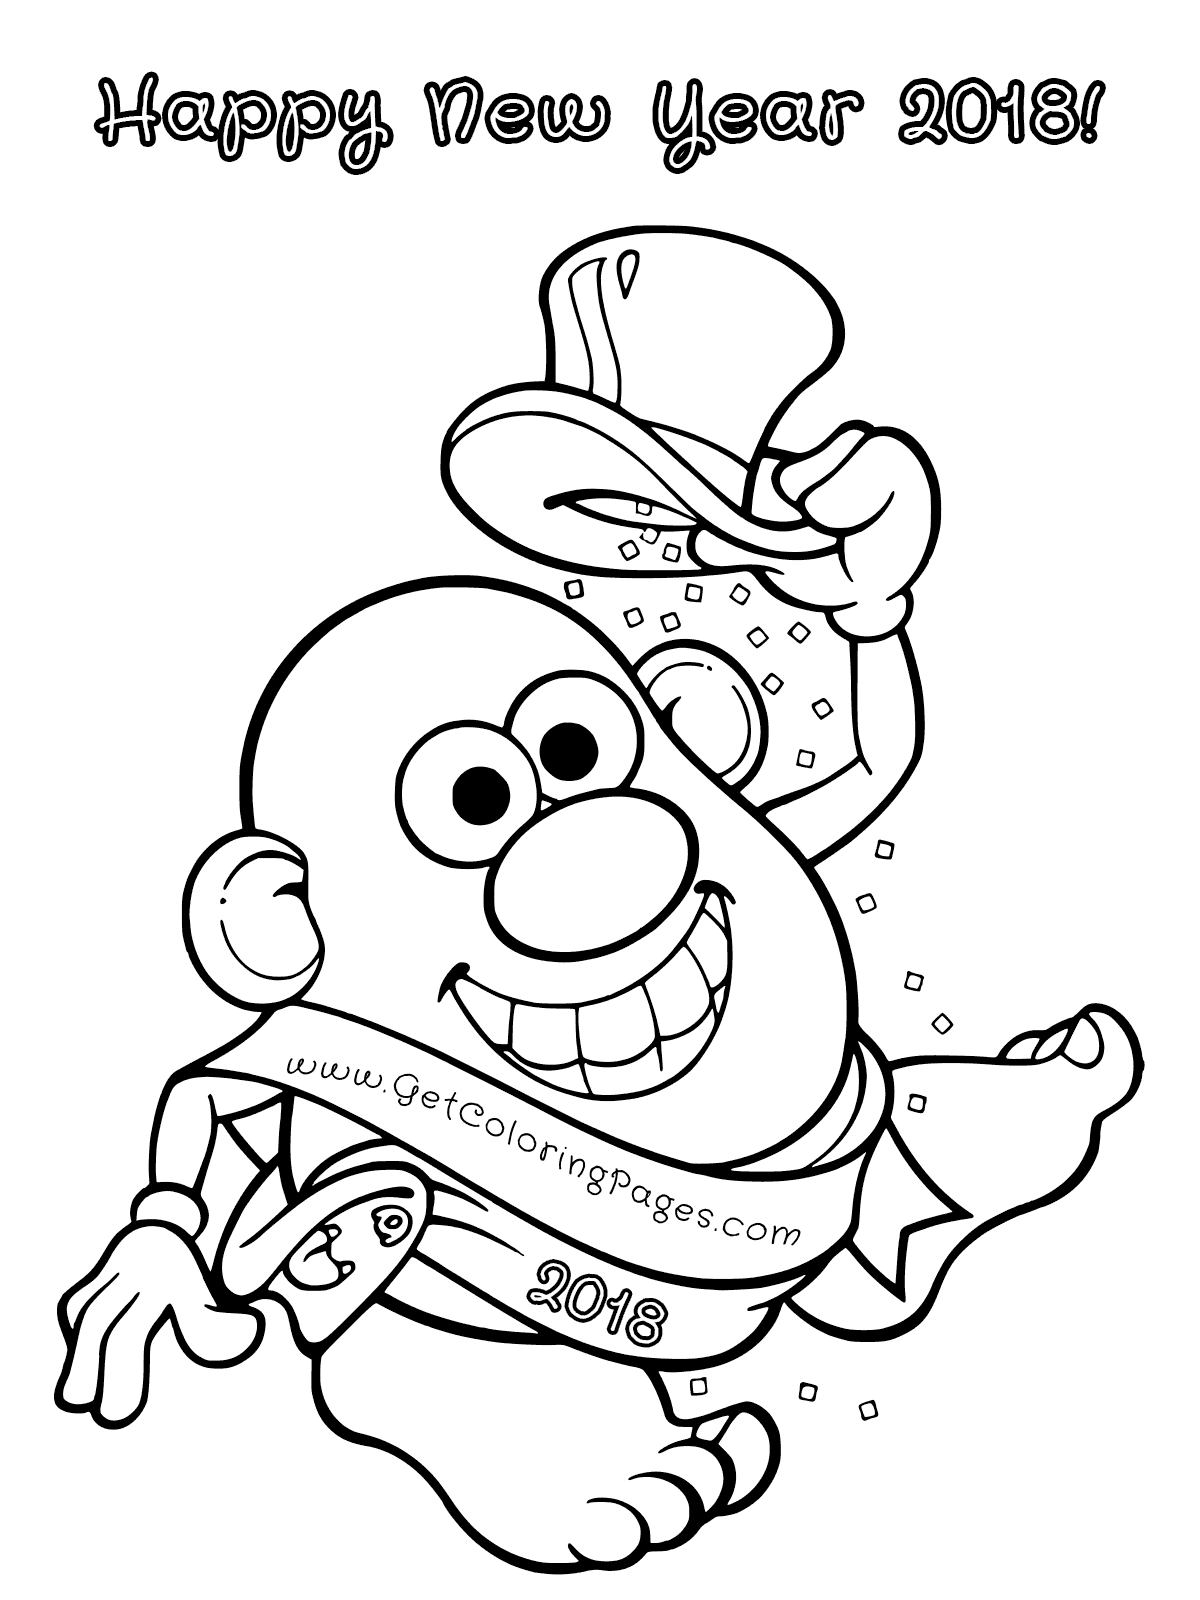 Mr. Potato Head New Year 2018 Coloring Page